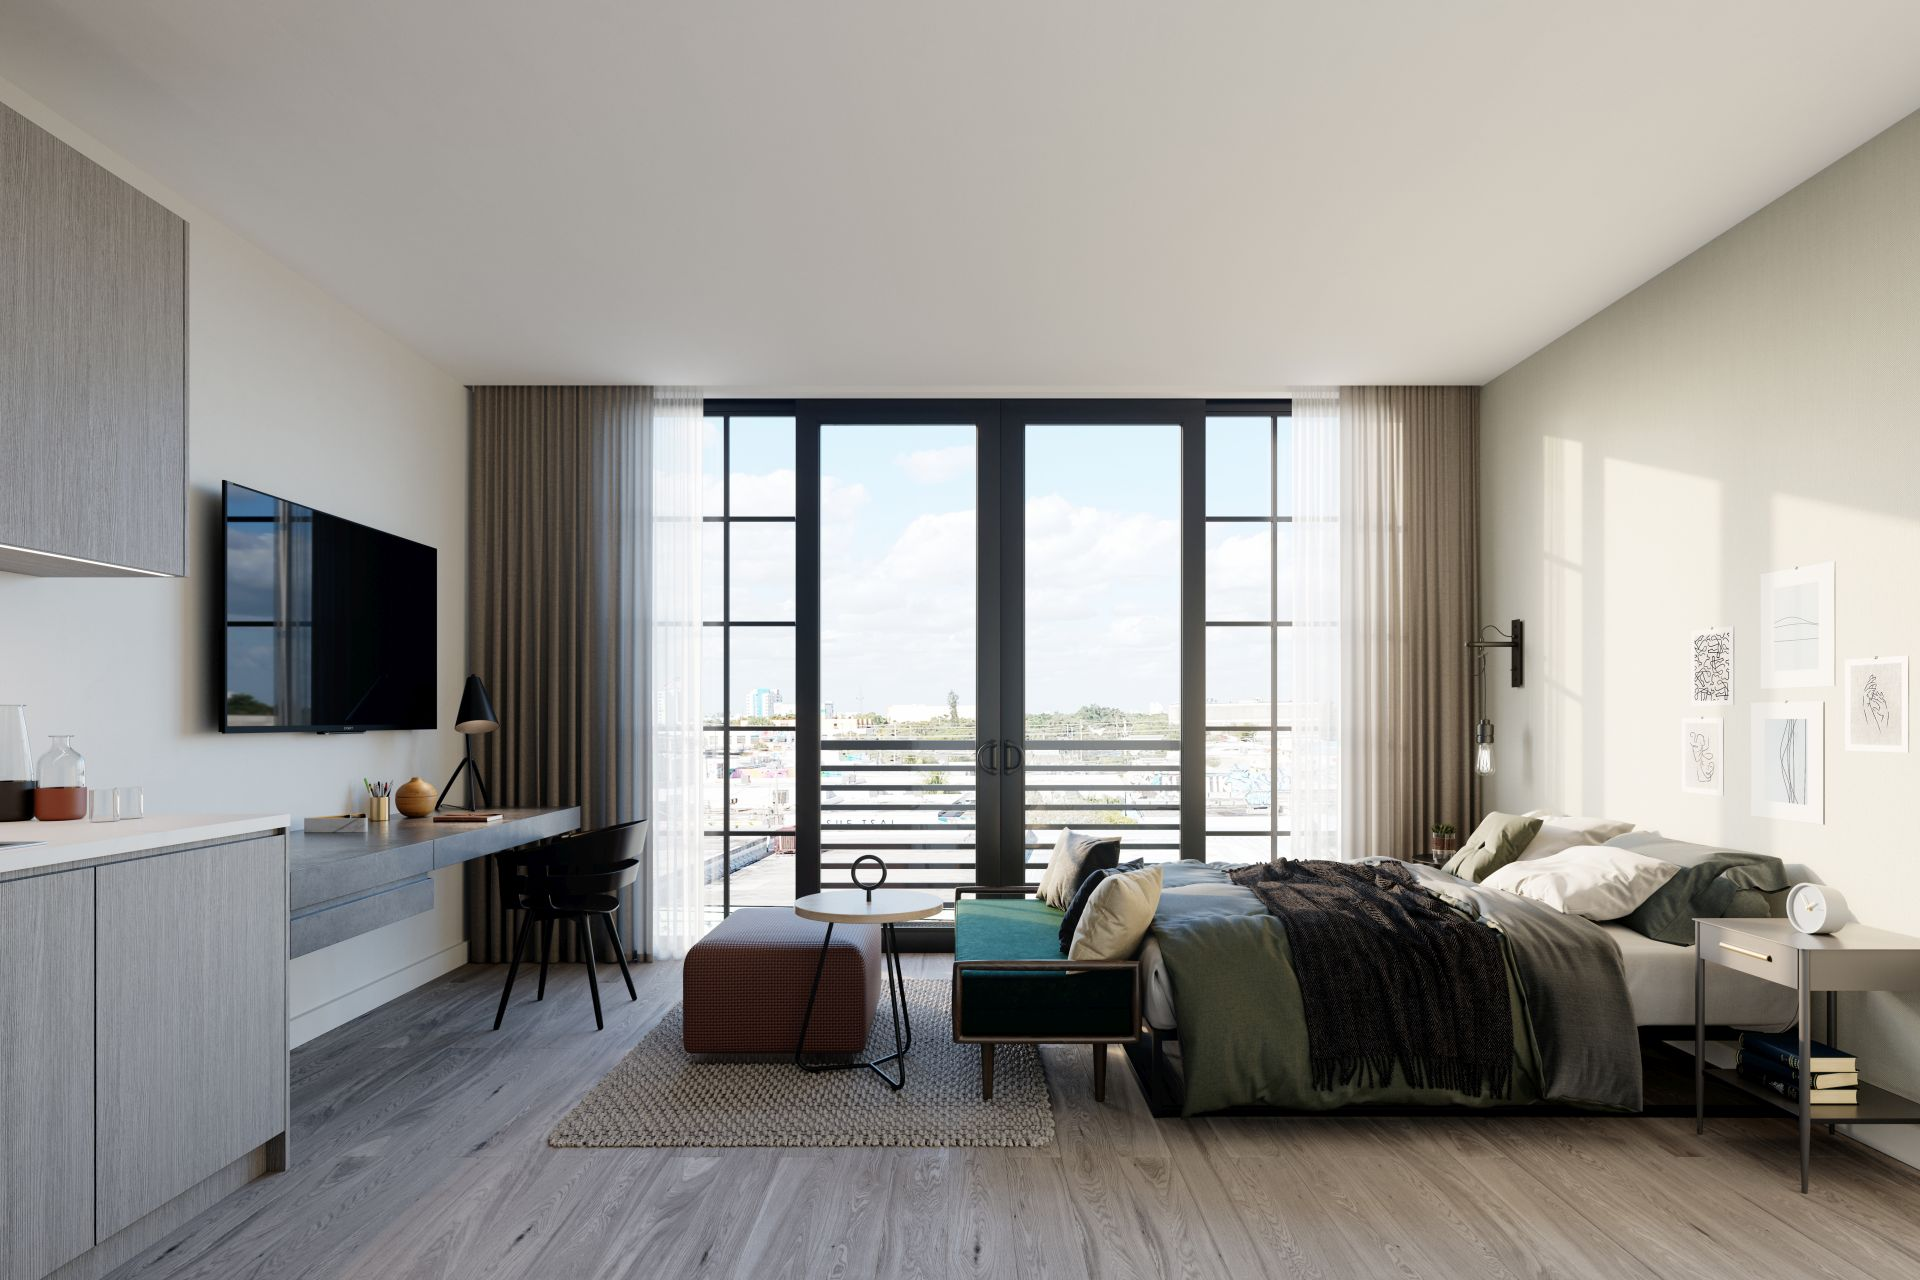 Wynwood 25 studio model unit